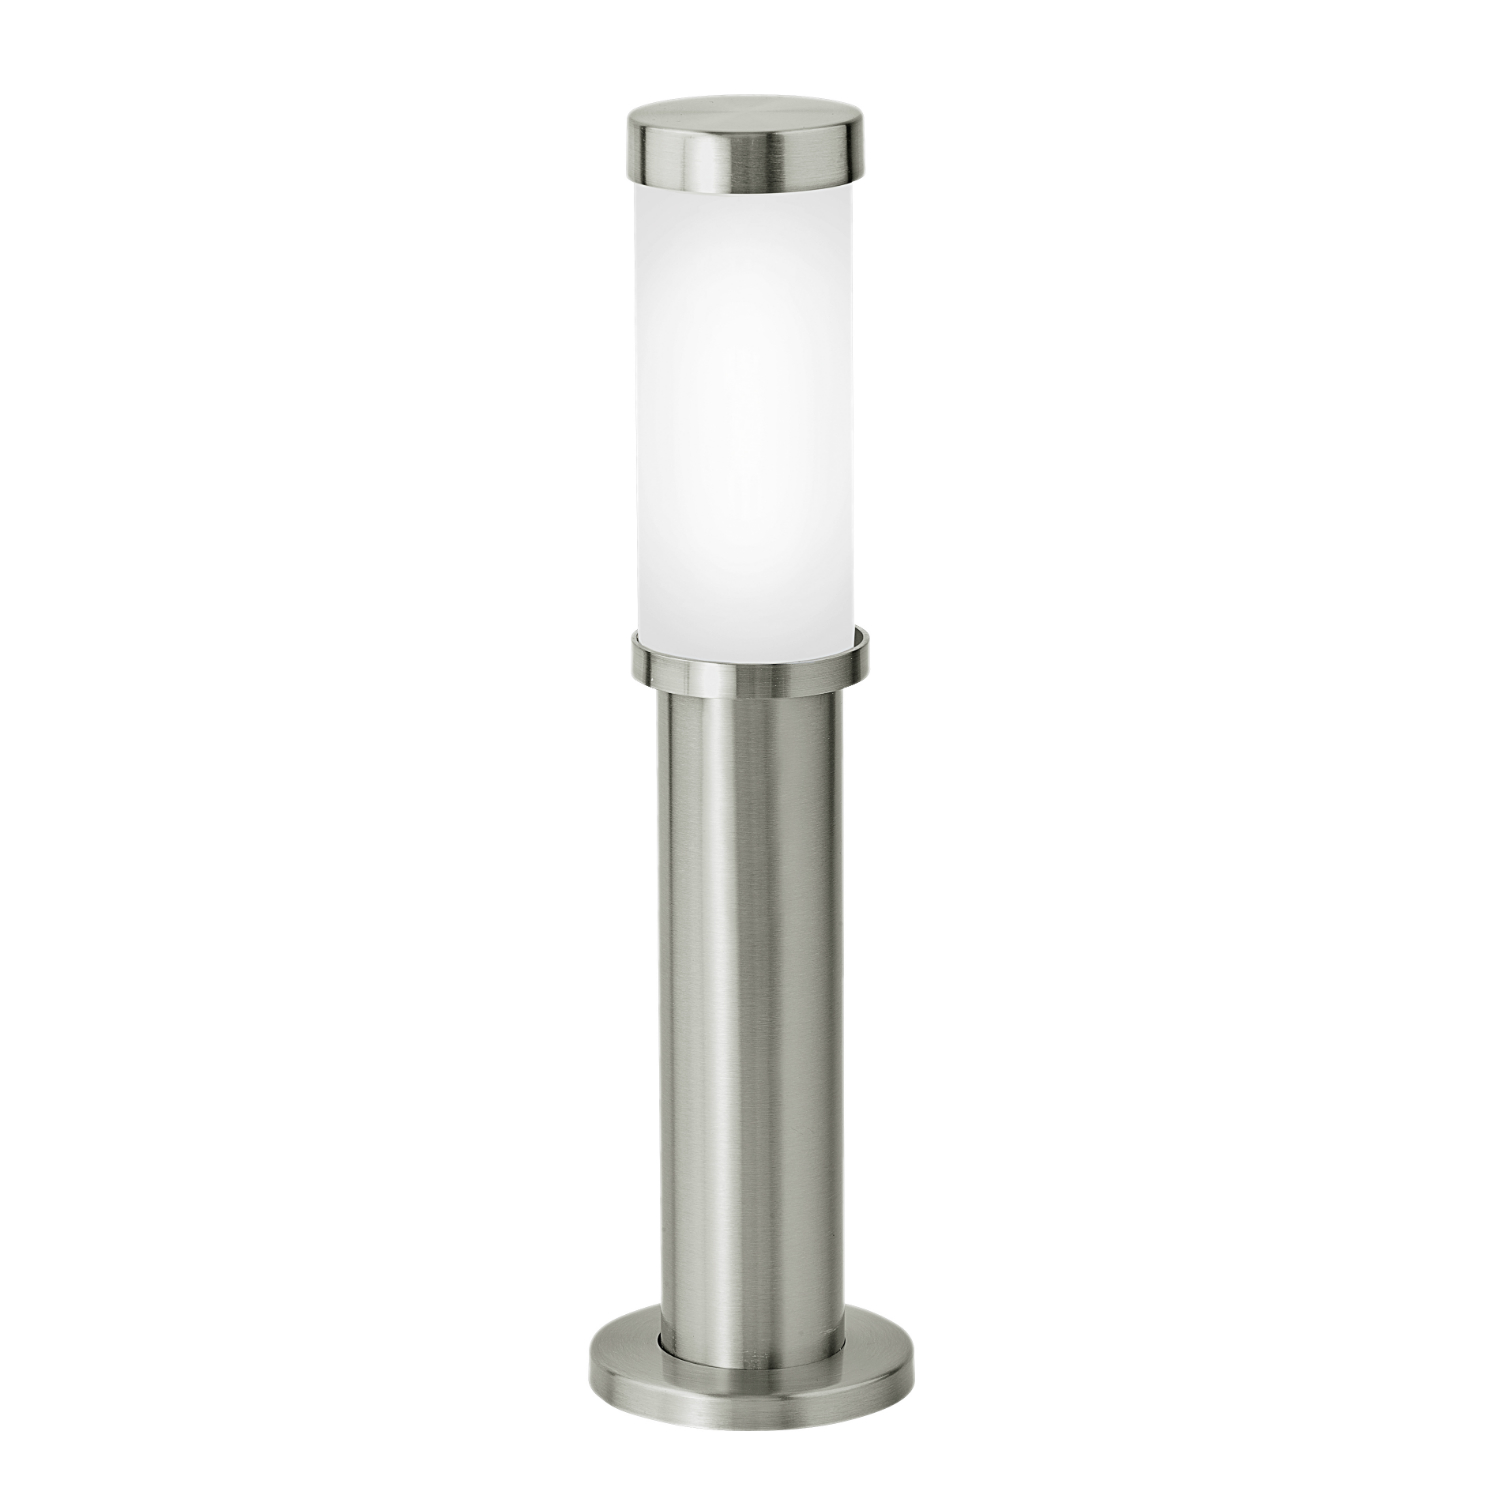 Lampadaire exterieur brico depot stunning luminaire jardin brico design trends with lampadaire - Lampadaire exterieur brico depot ...